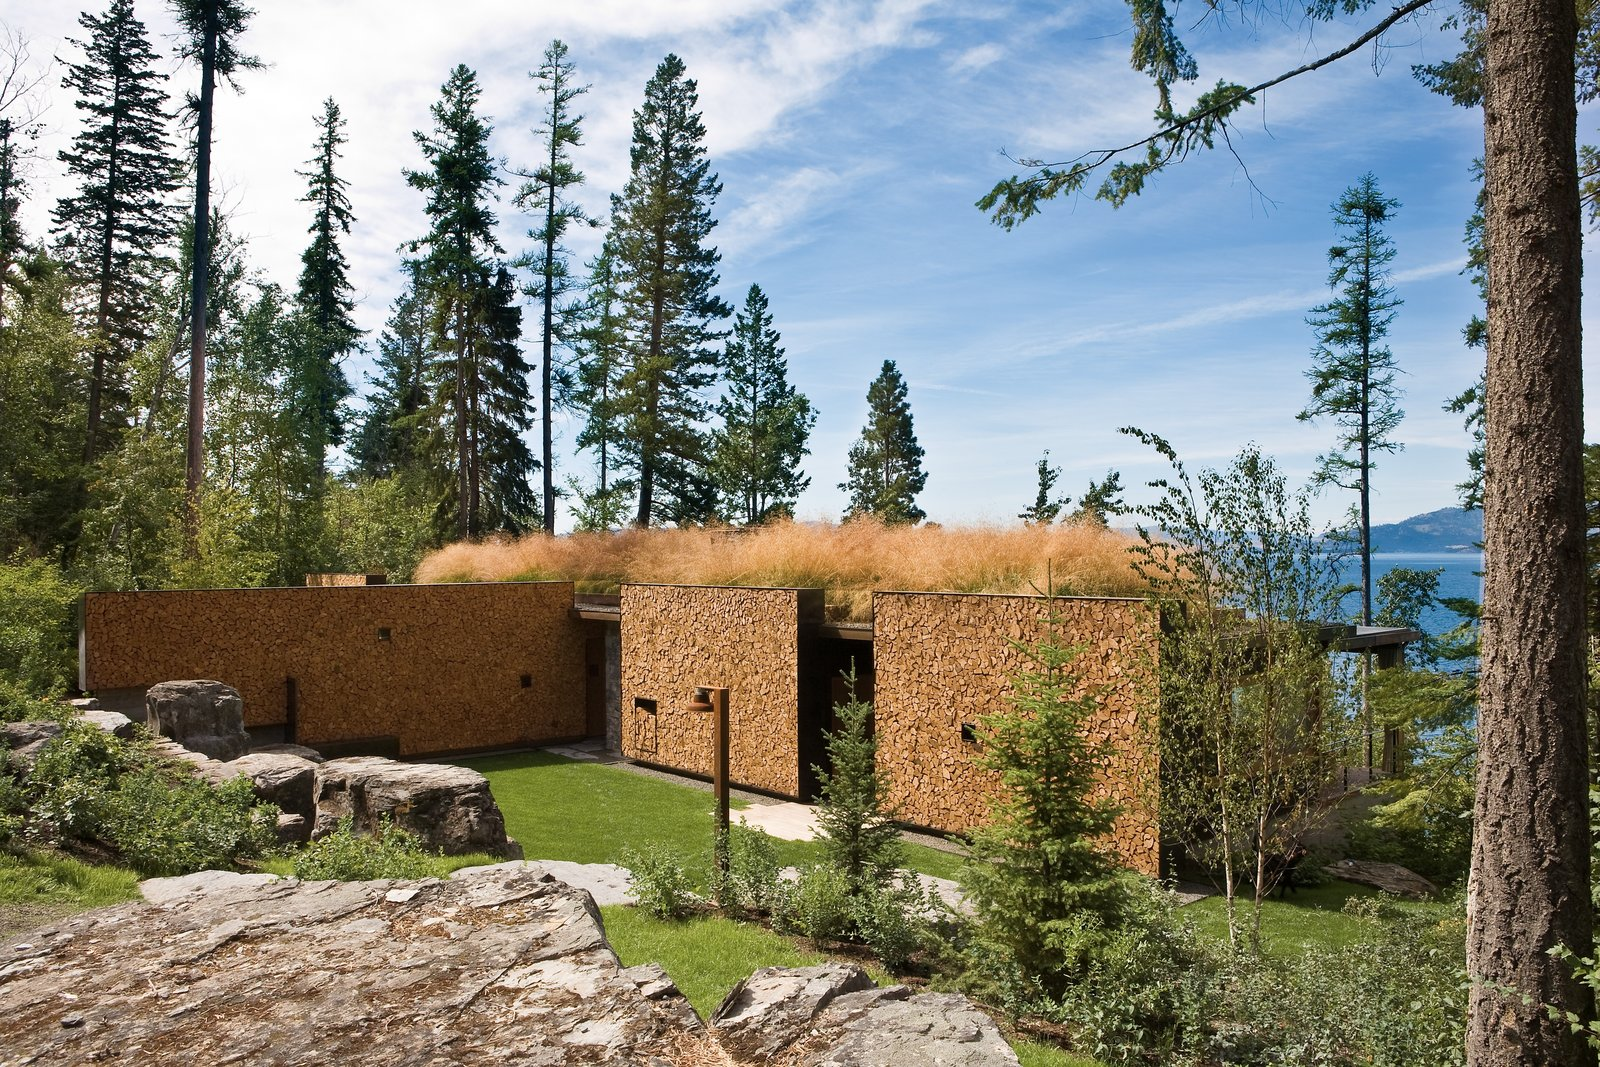 Stacked-Wood Walls Tie This Eco-Friendly Camp to the Montana Landscape